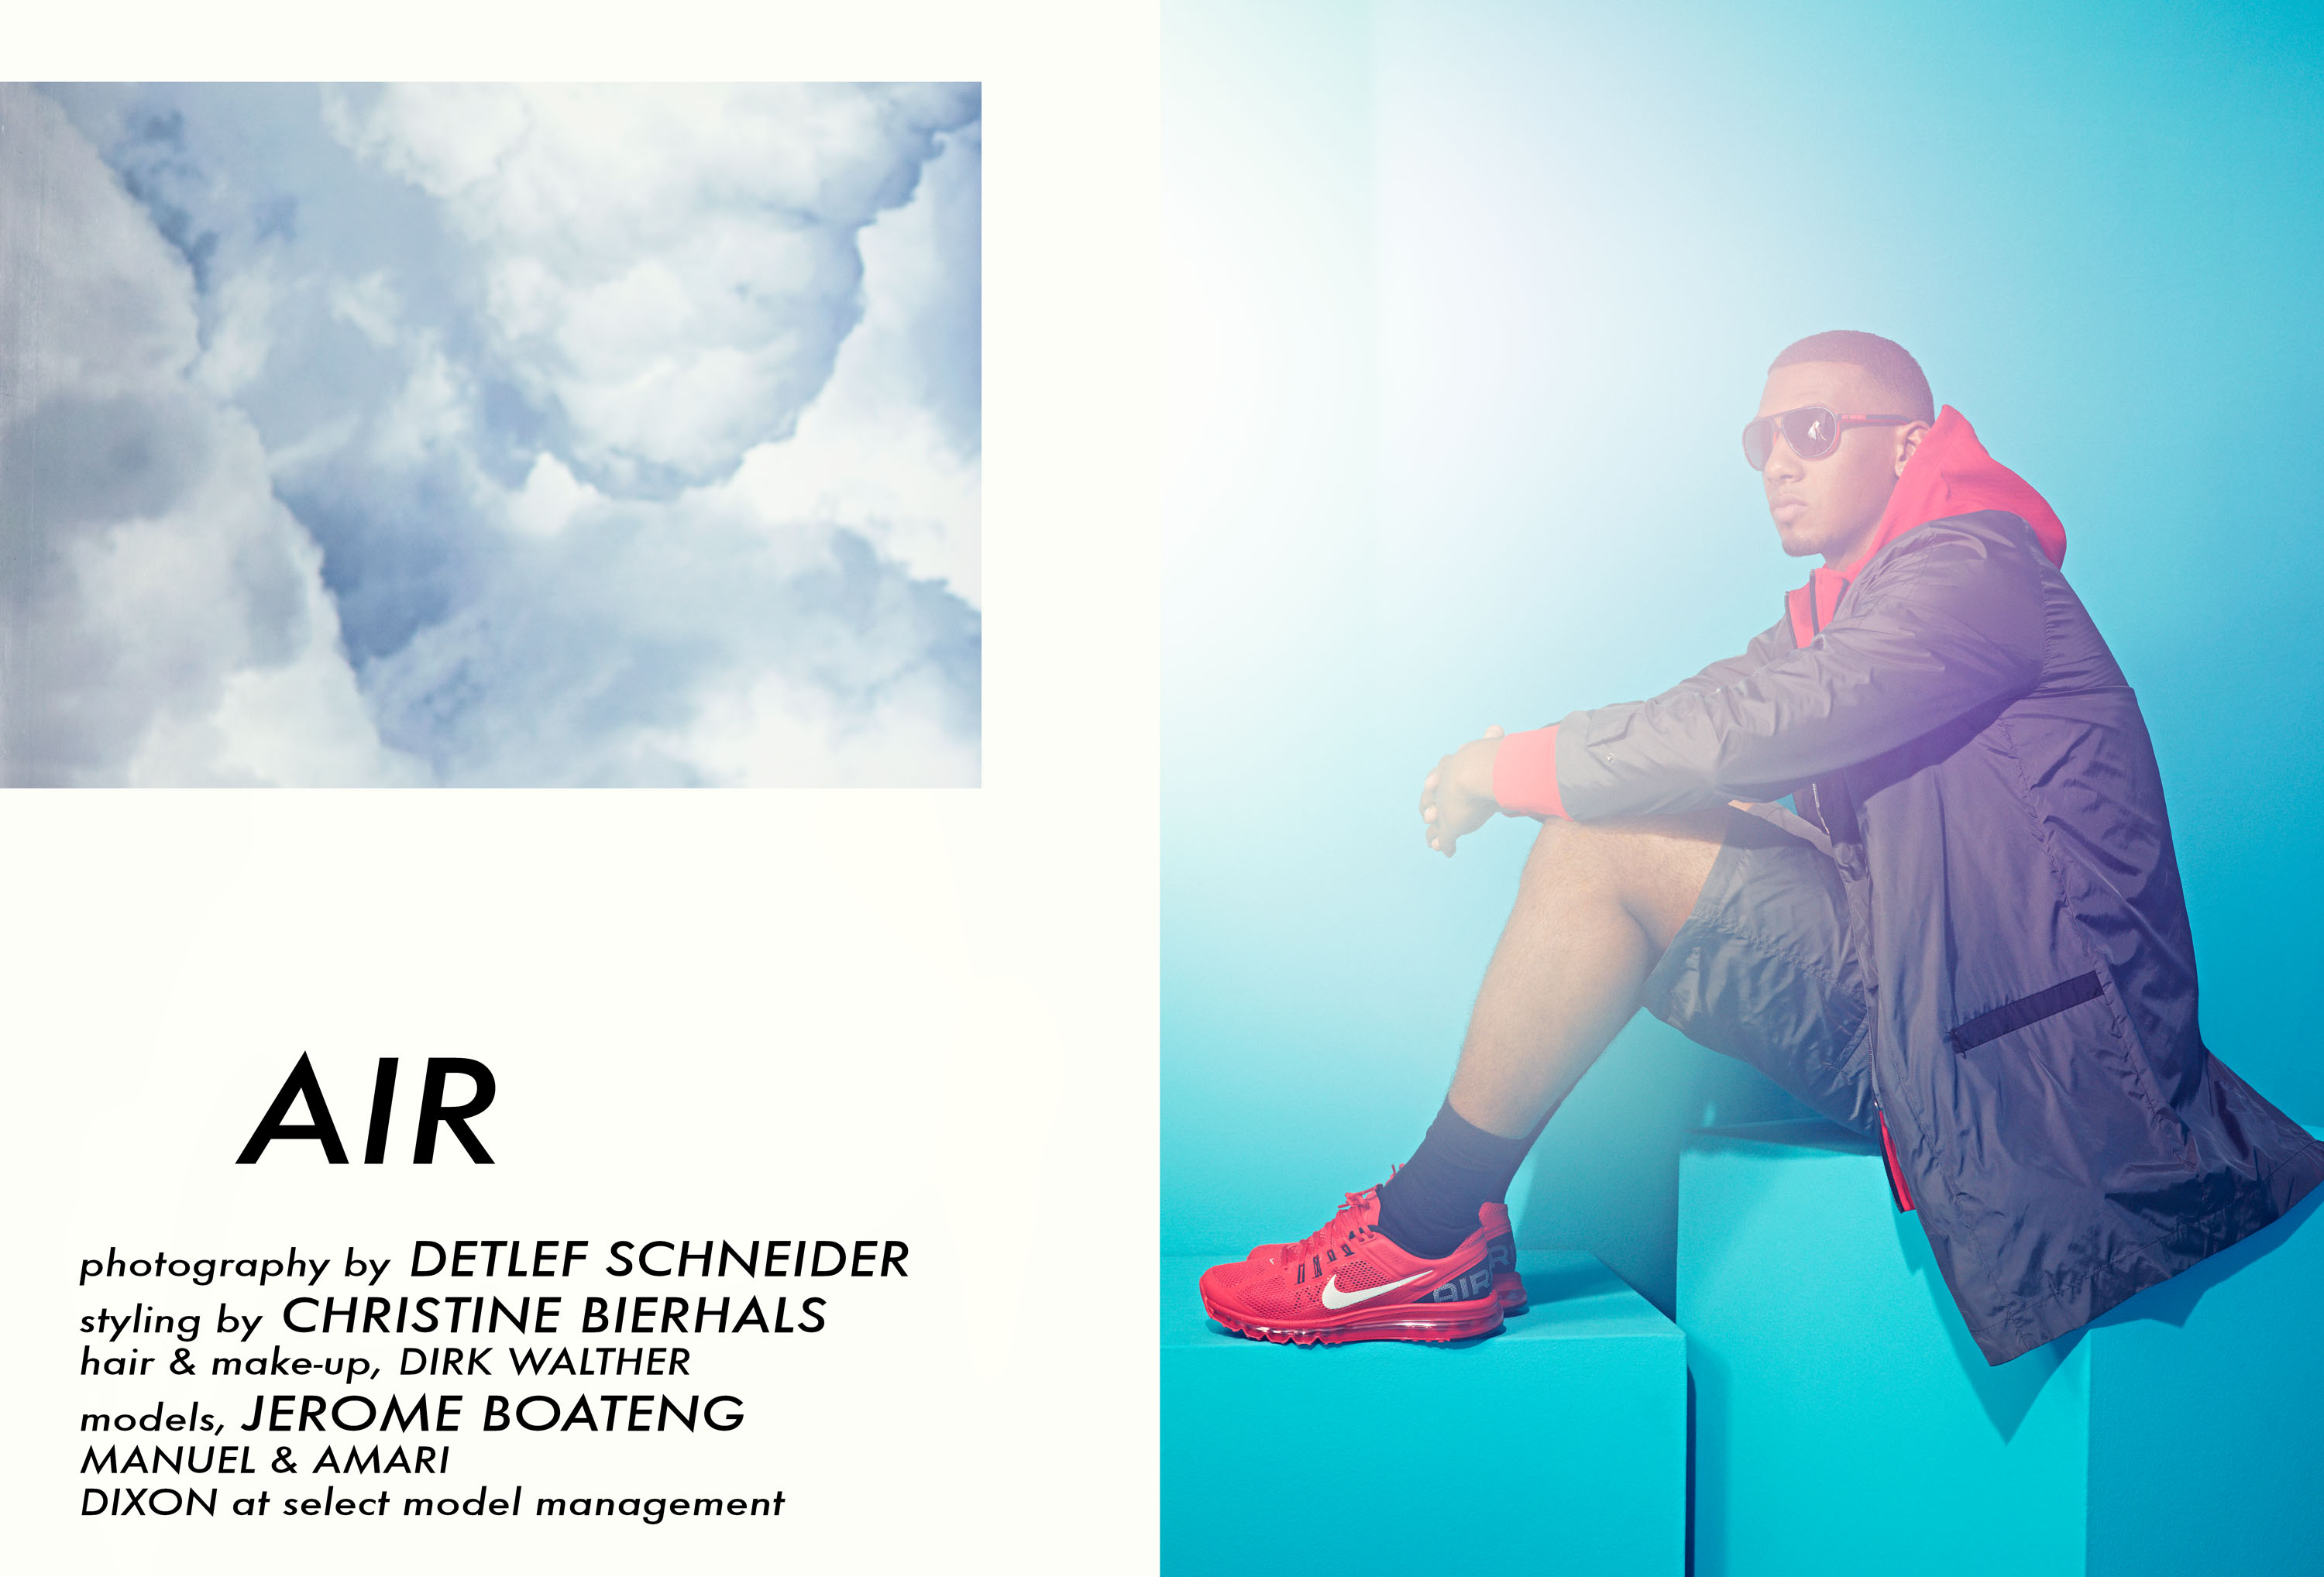 QVEST Magazine, Air Supreme, Detlef Schneider Photography, Jerome Boateng, Nike, Nike Air Max,